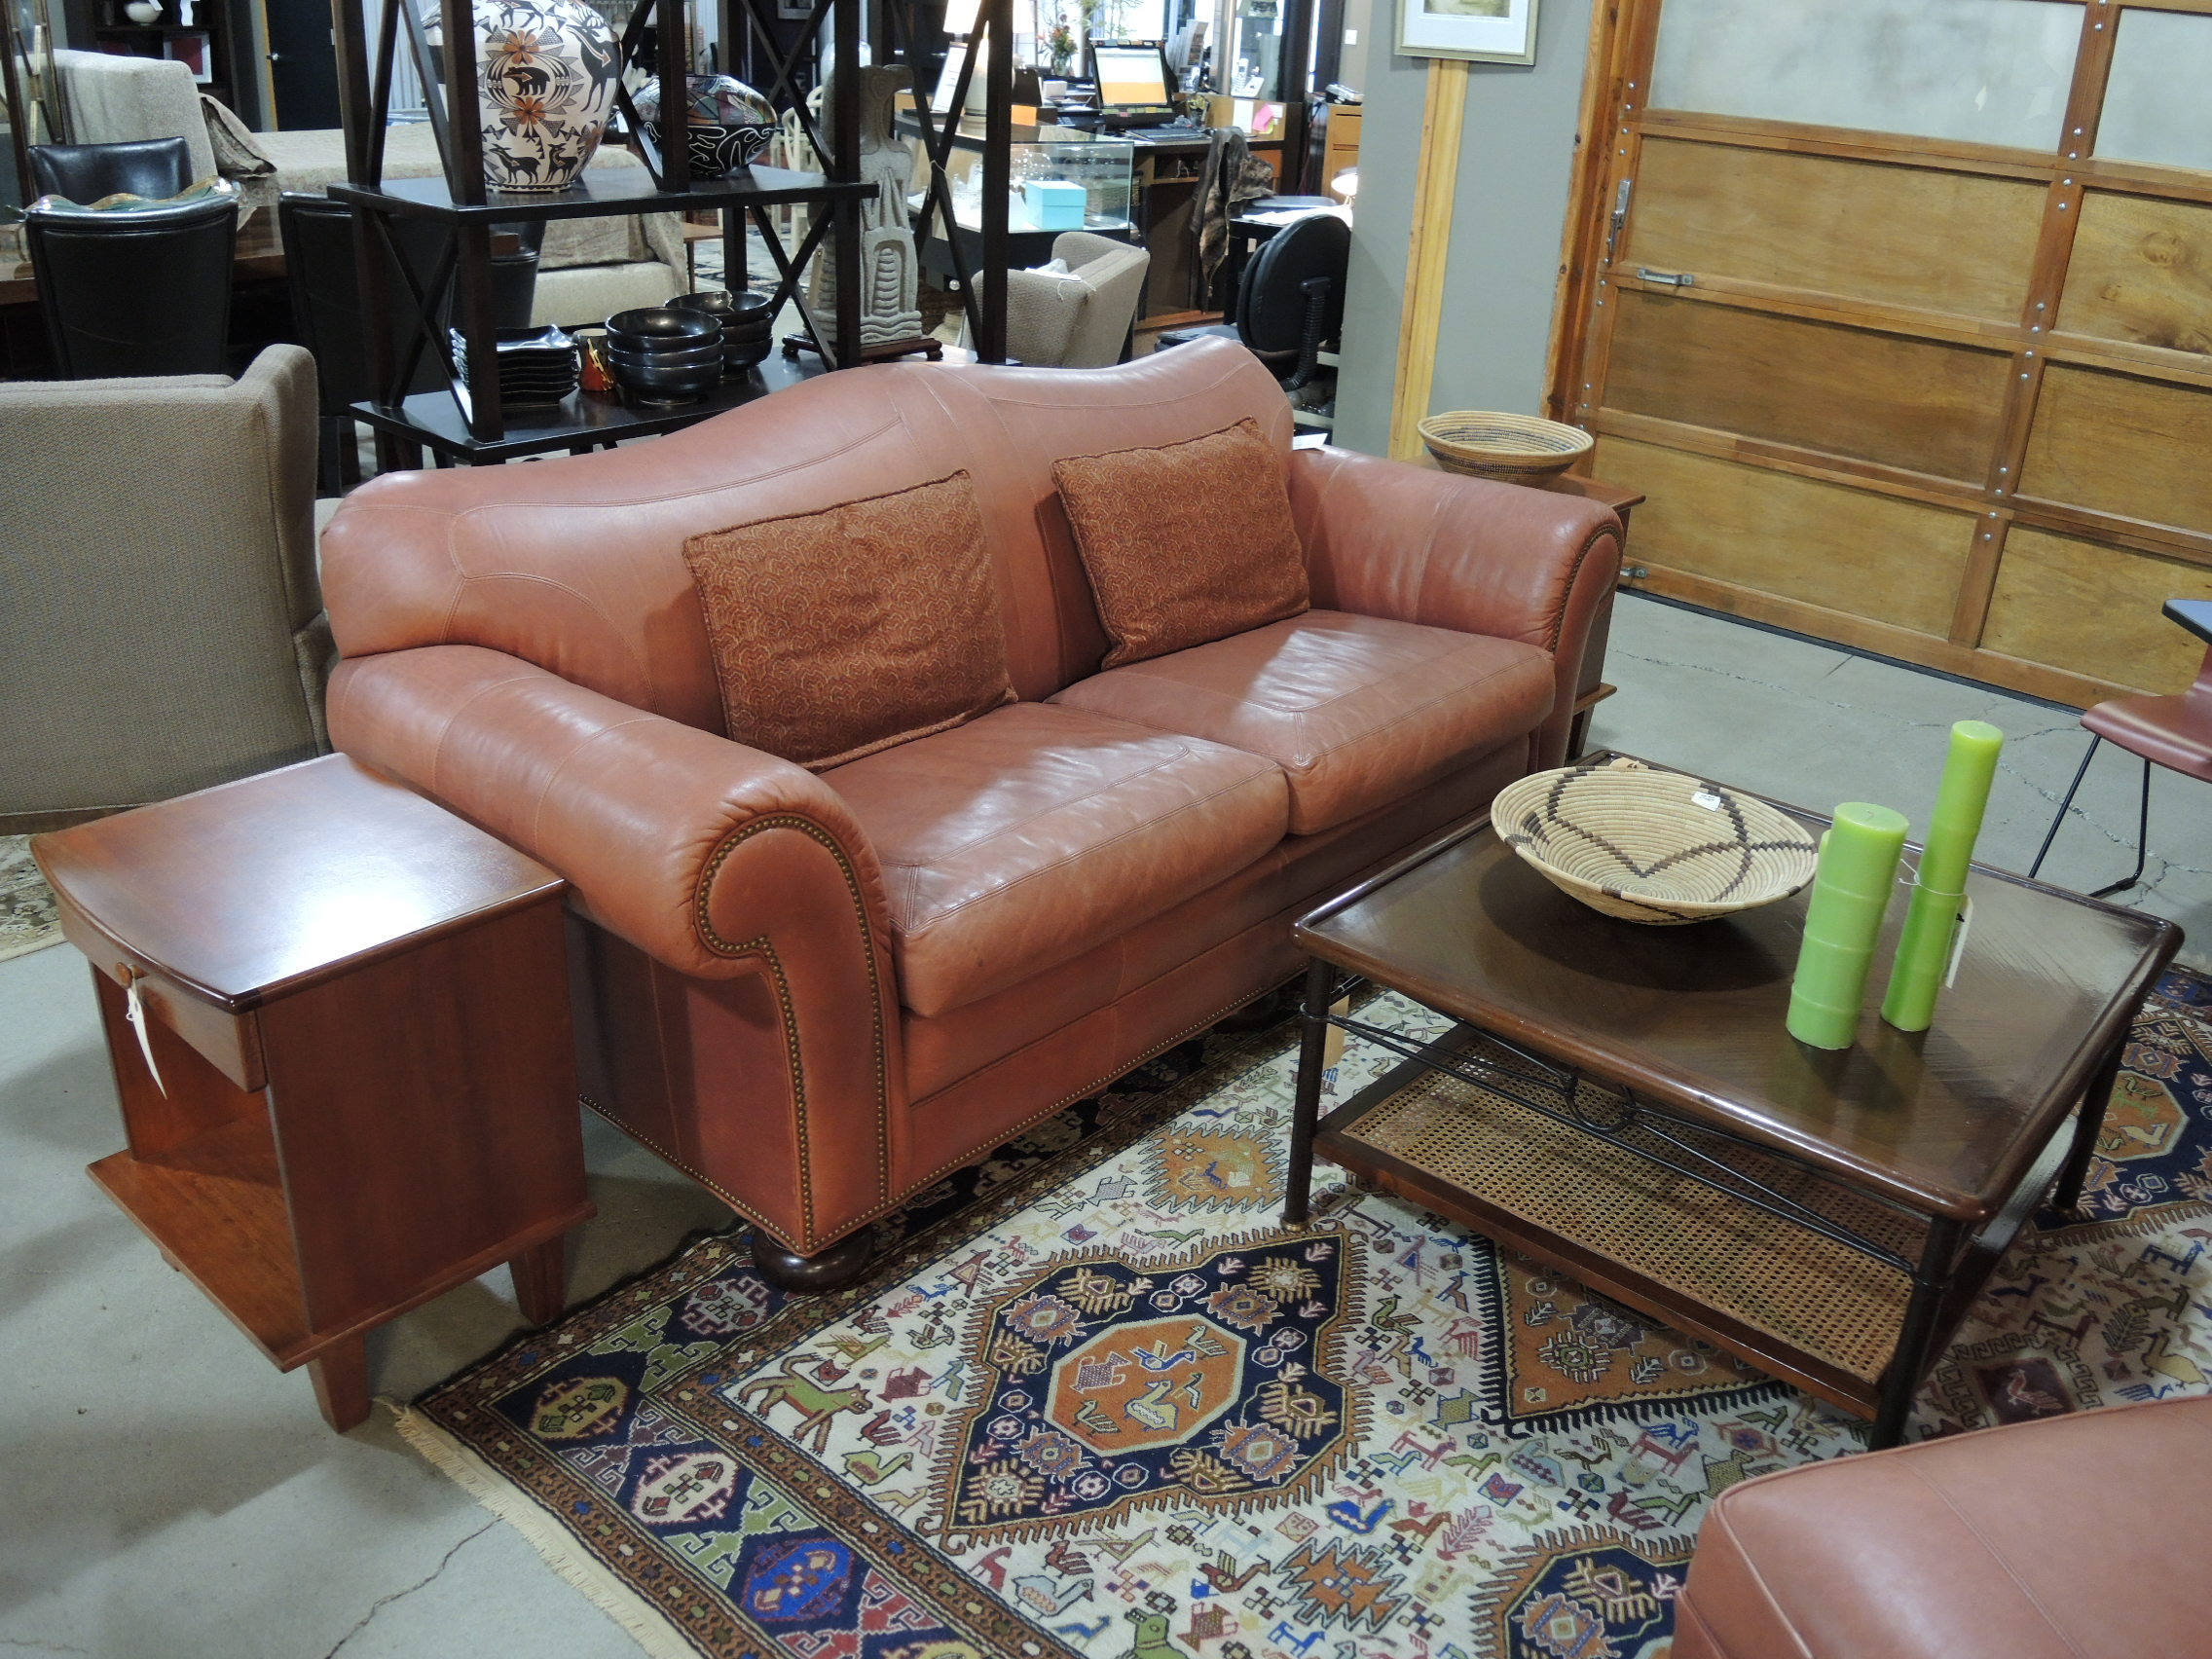 Consignment Sofa Seams To Fit Home Page 3 ~ Rust Colored Sectional Sofa